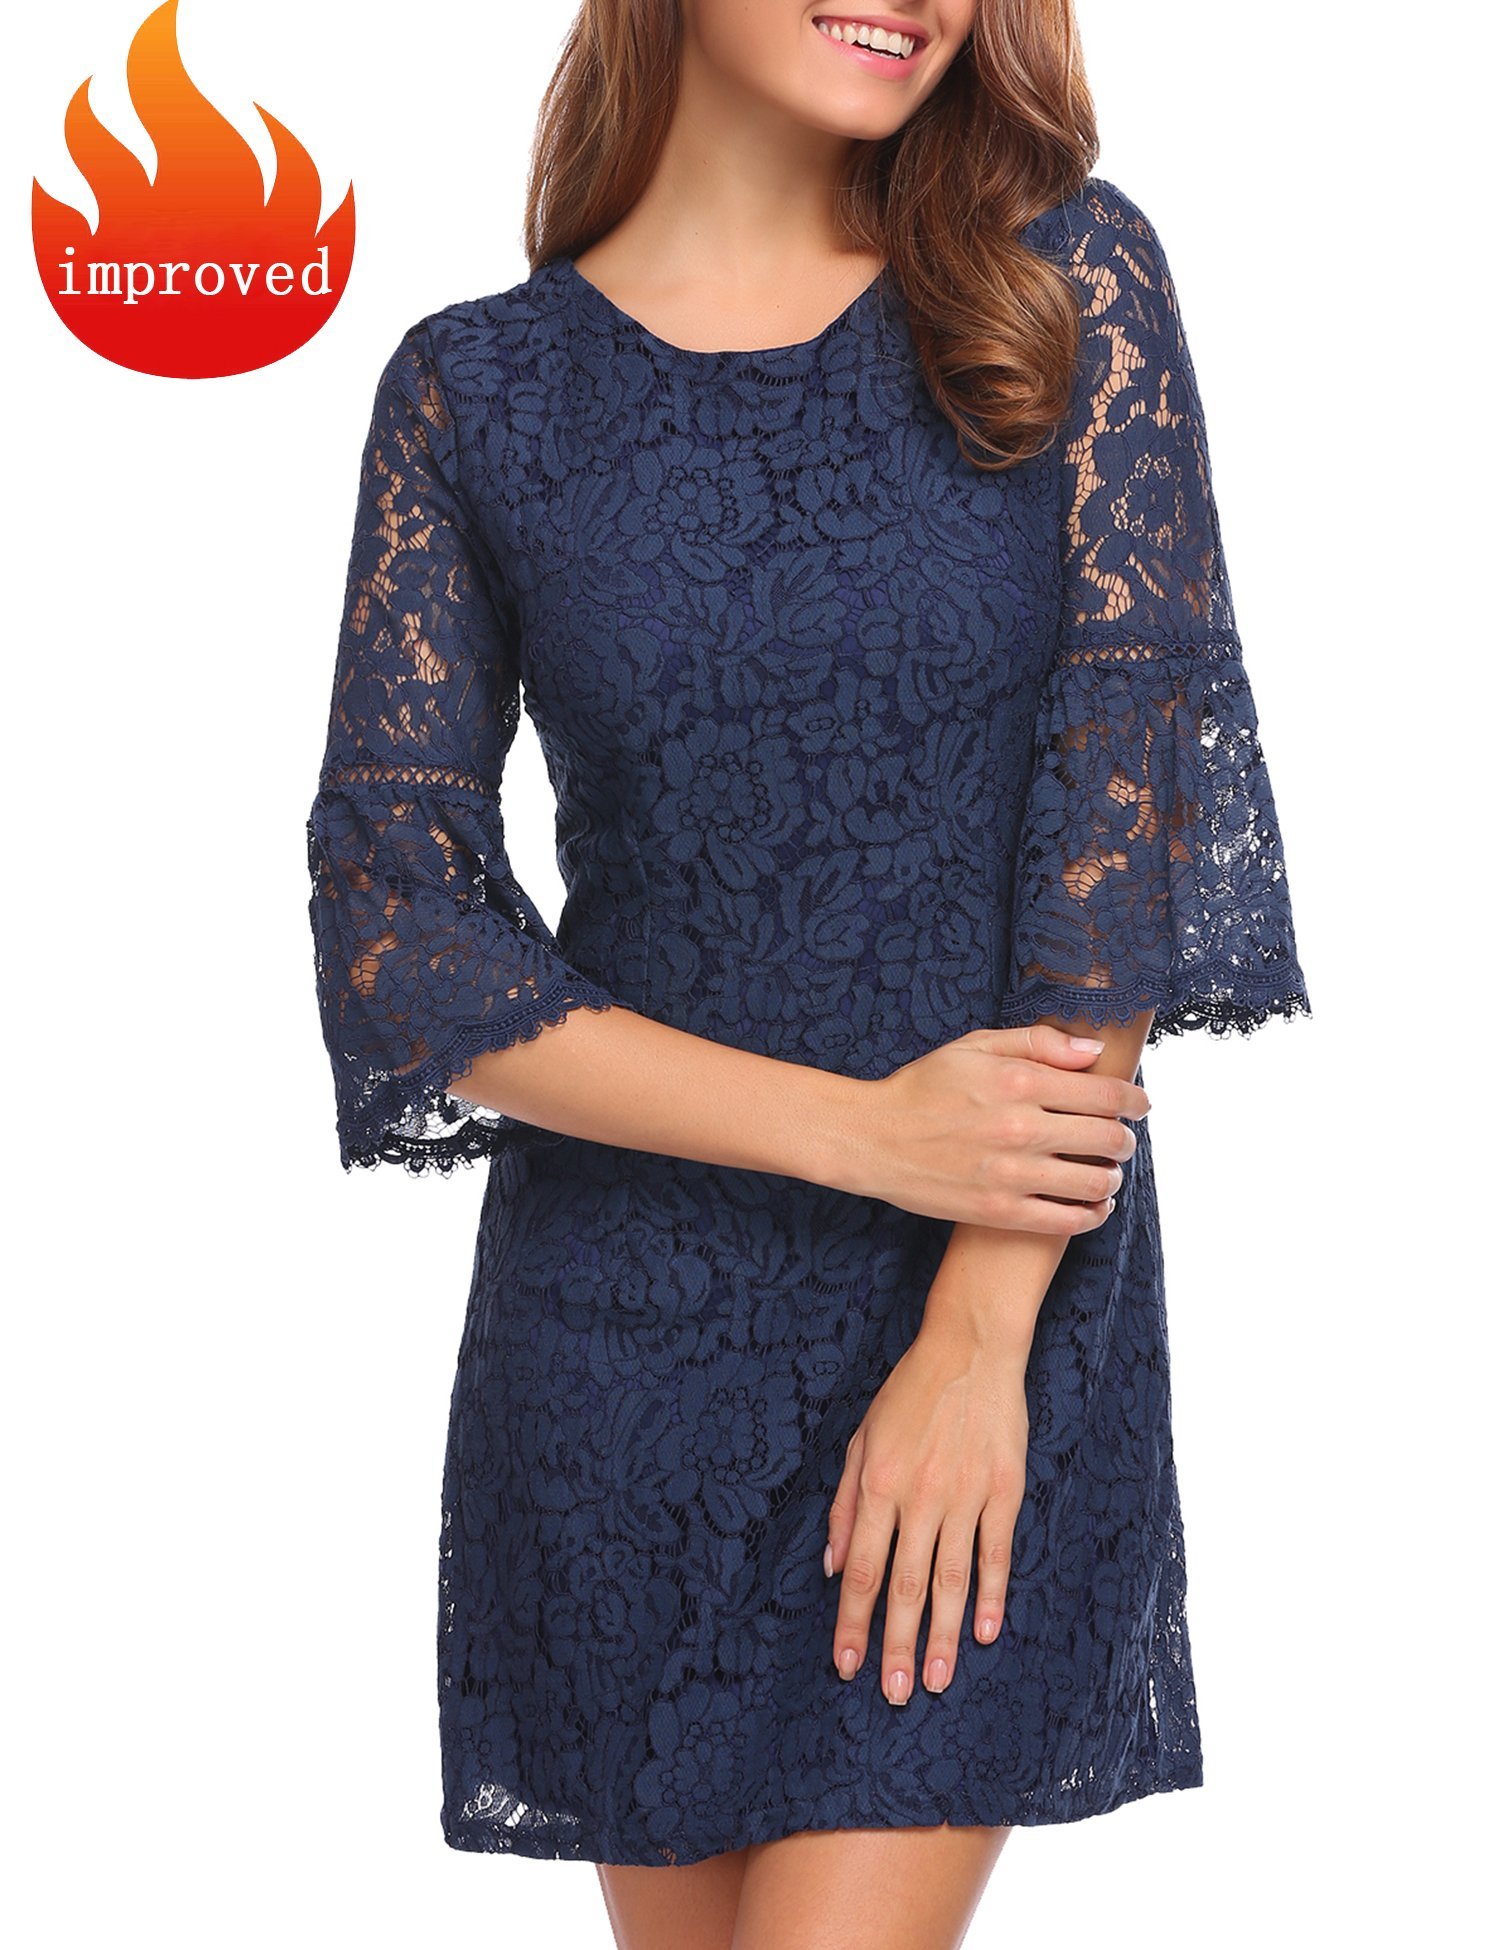 Zeagoo Women's 3/4 Flare Sleeve Floral Lace A-line Night Party Dress (Large, Navy Blue)